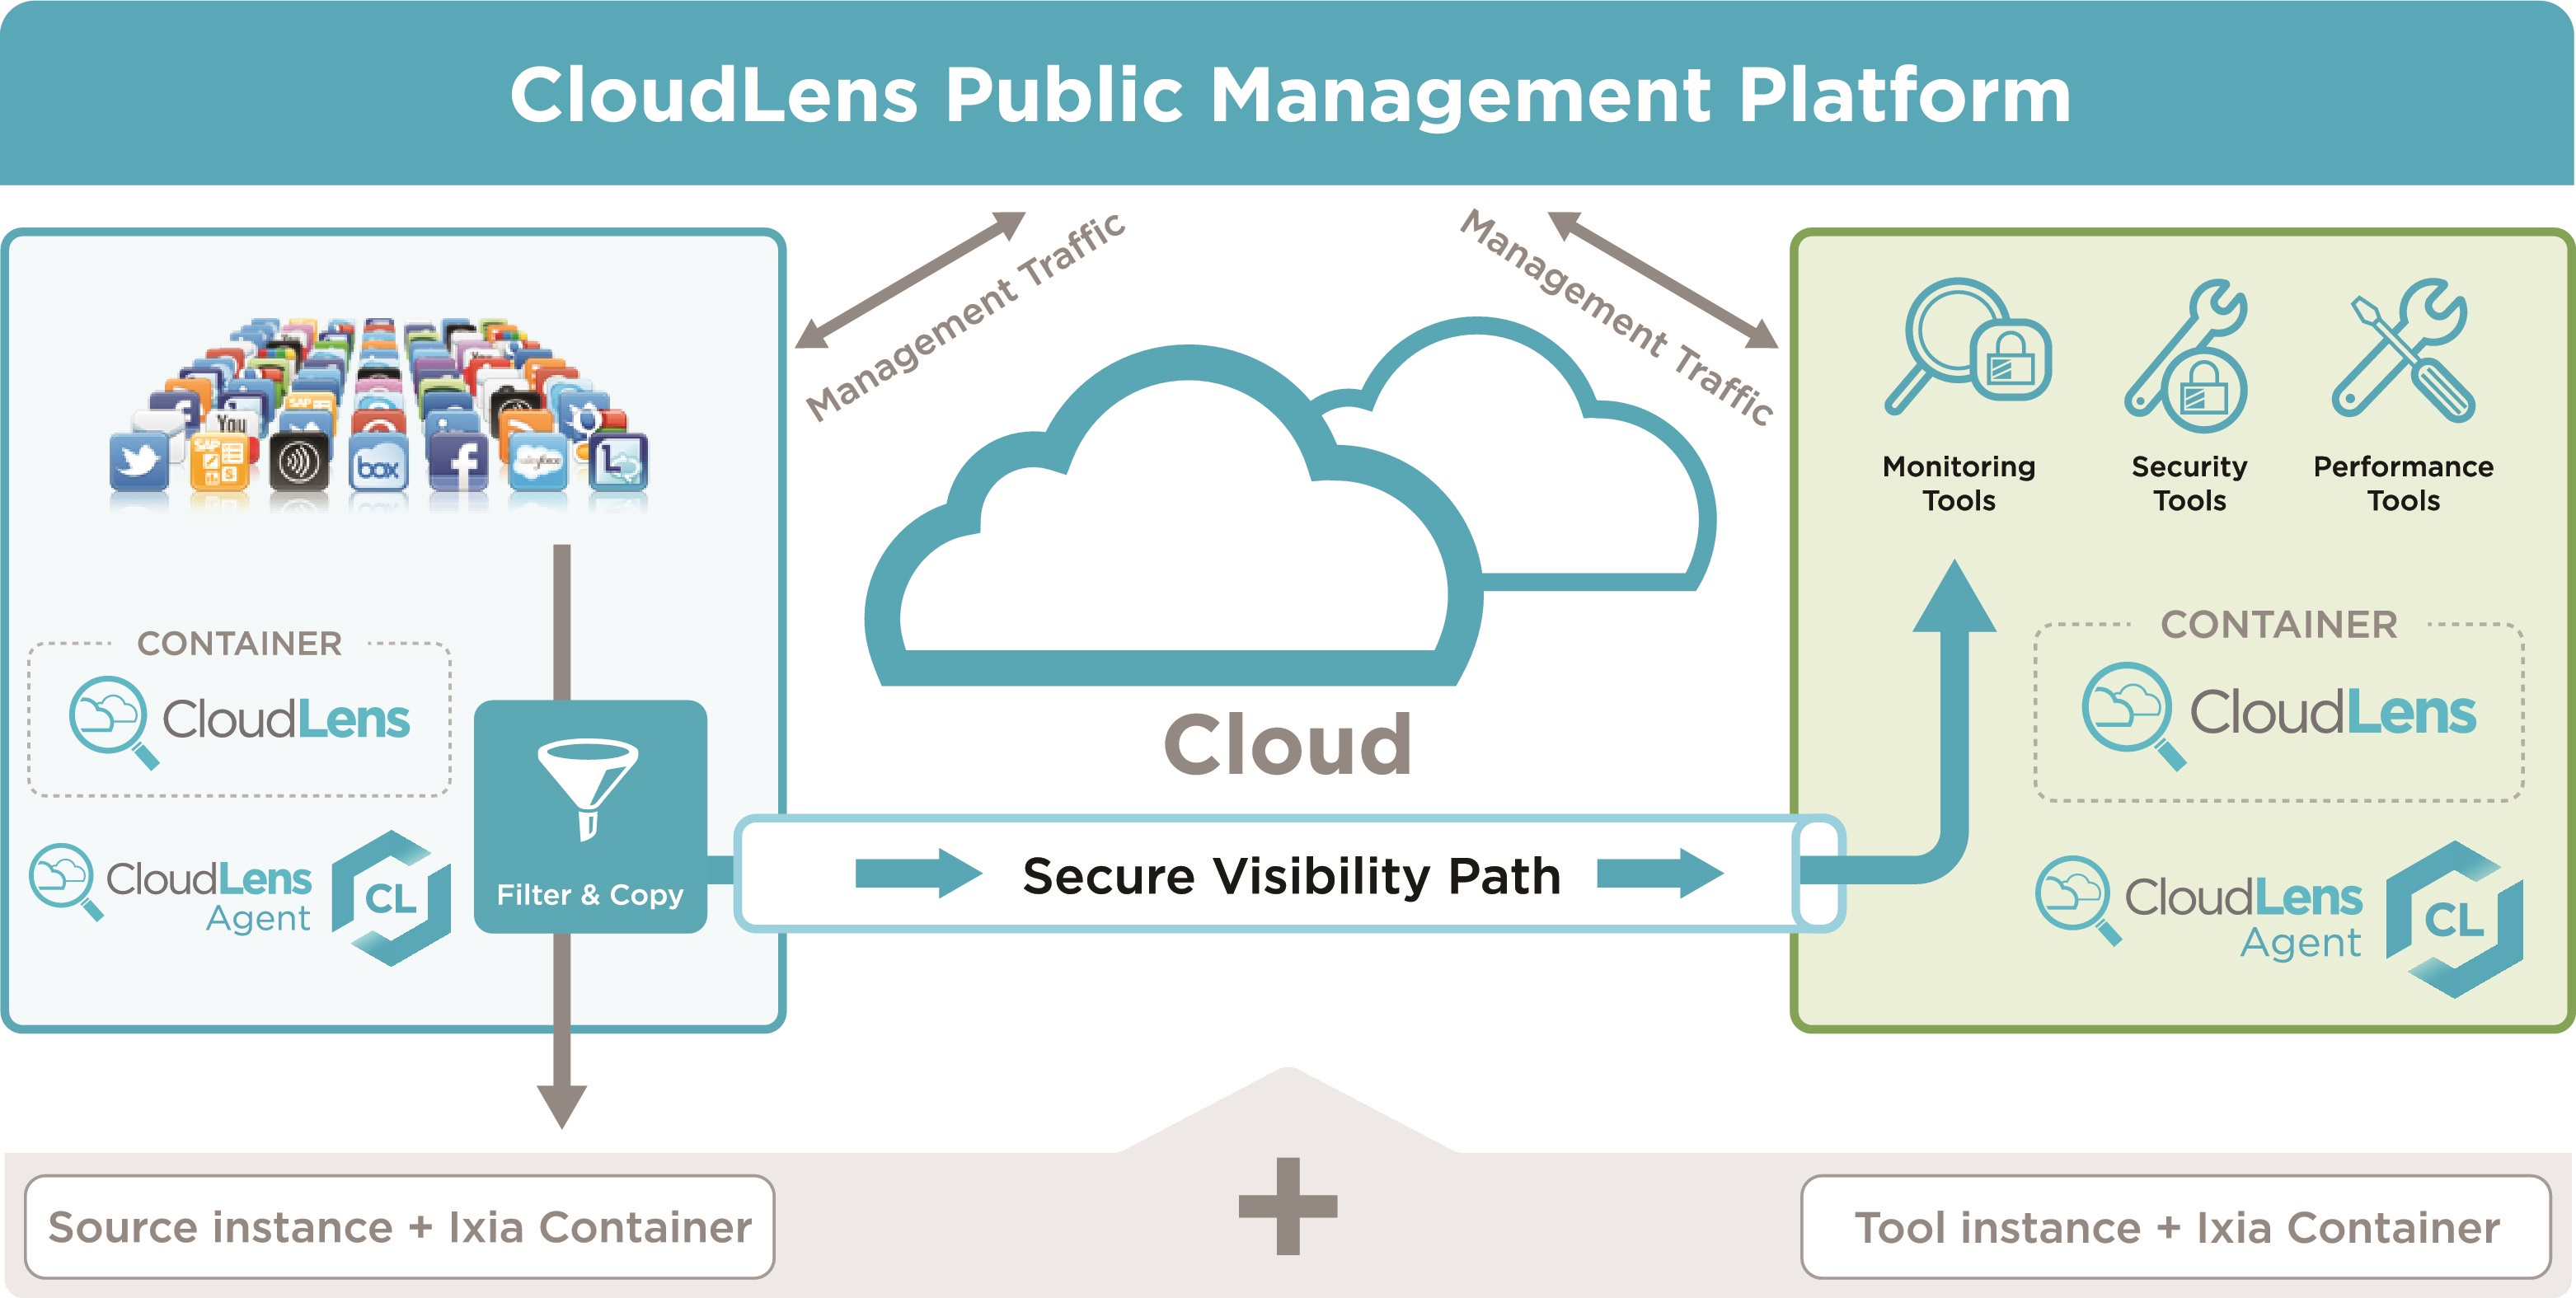 CloudLens Public Management Platform